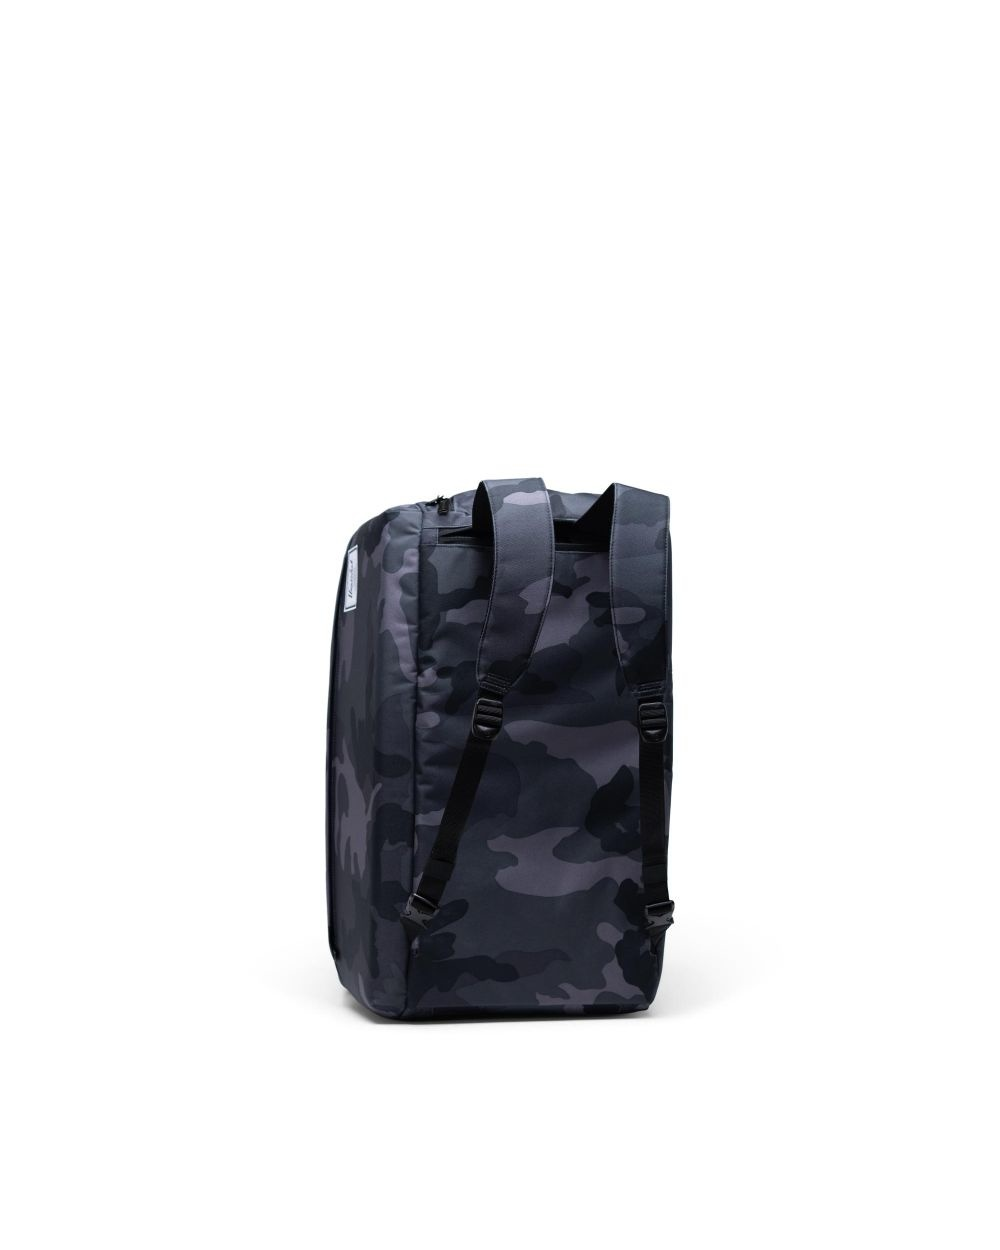 OUTFITTER LUGGAGE 50L-3